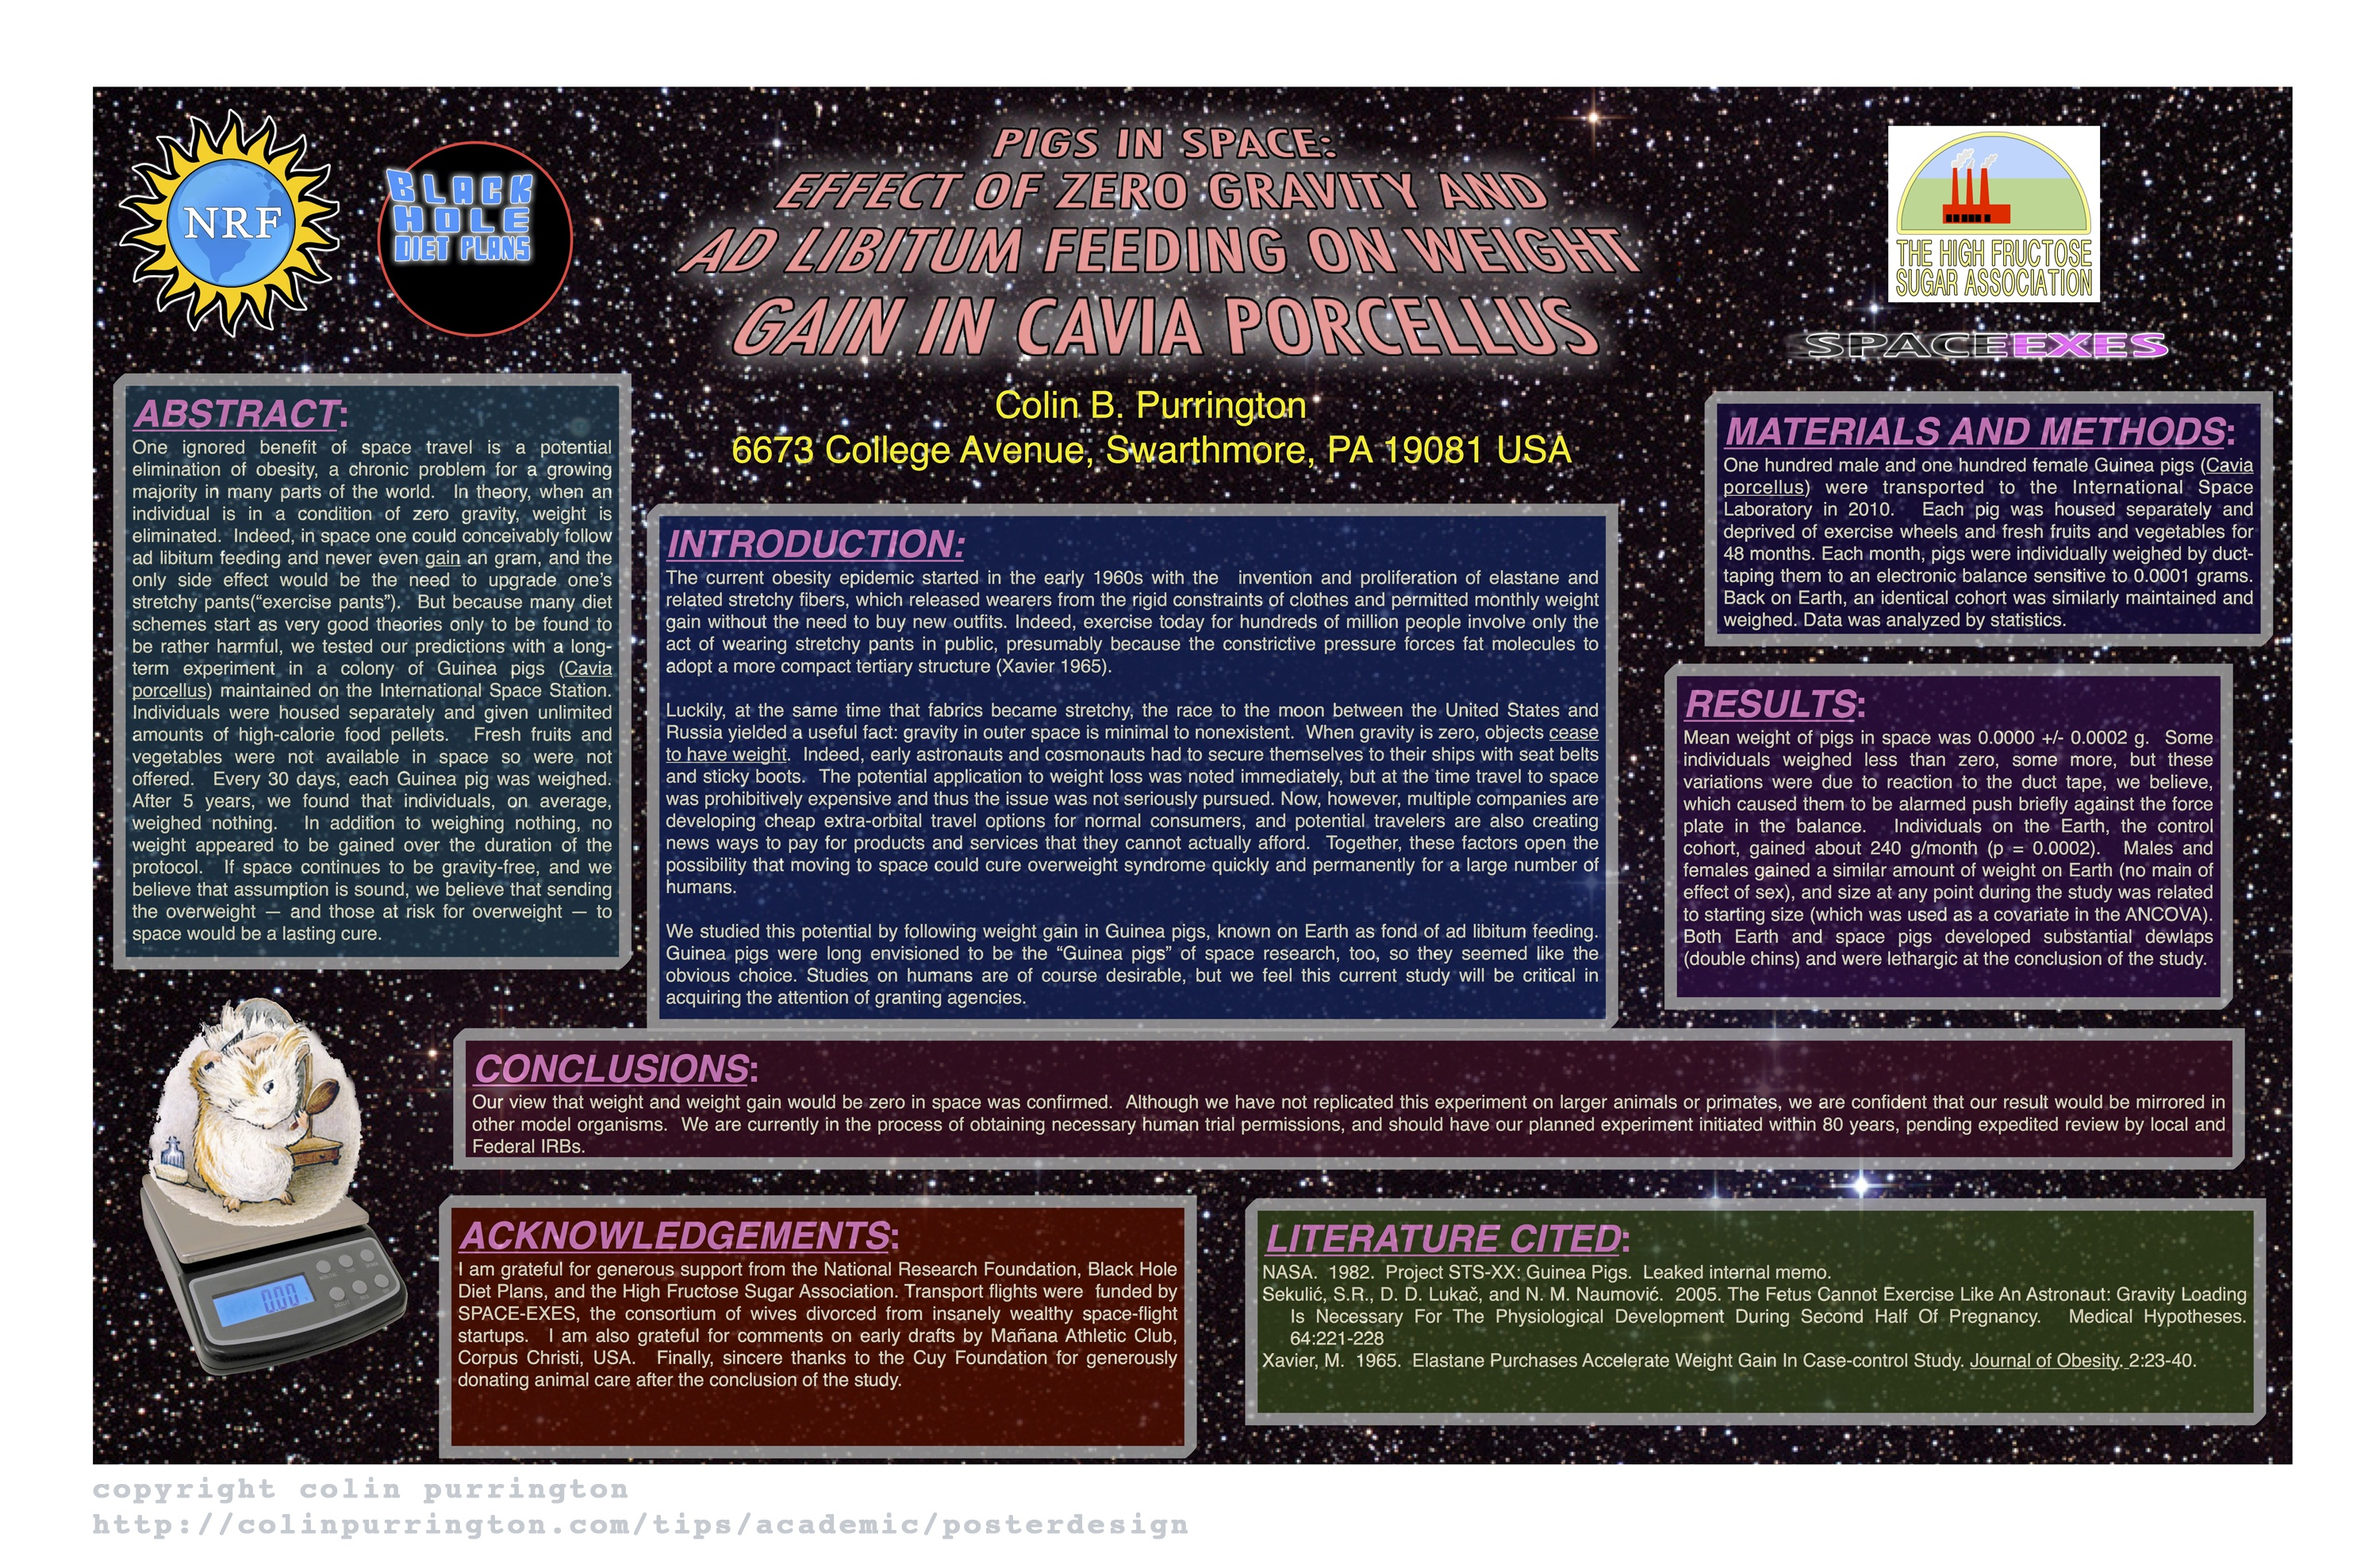 example of bad conference poster - colin purrington, Presentation templates